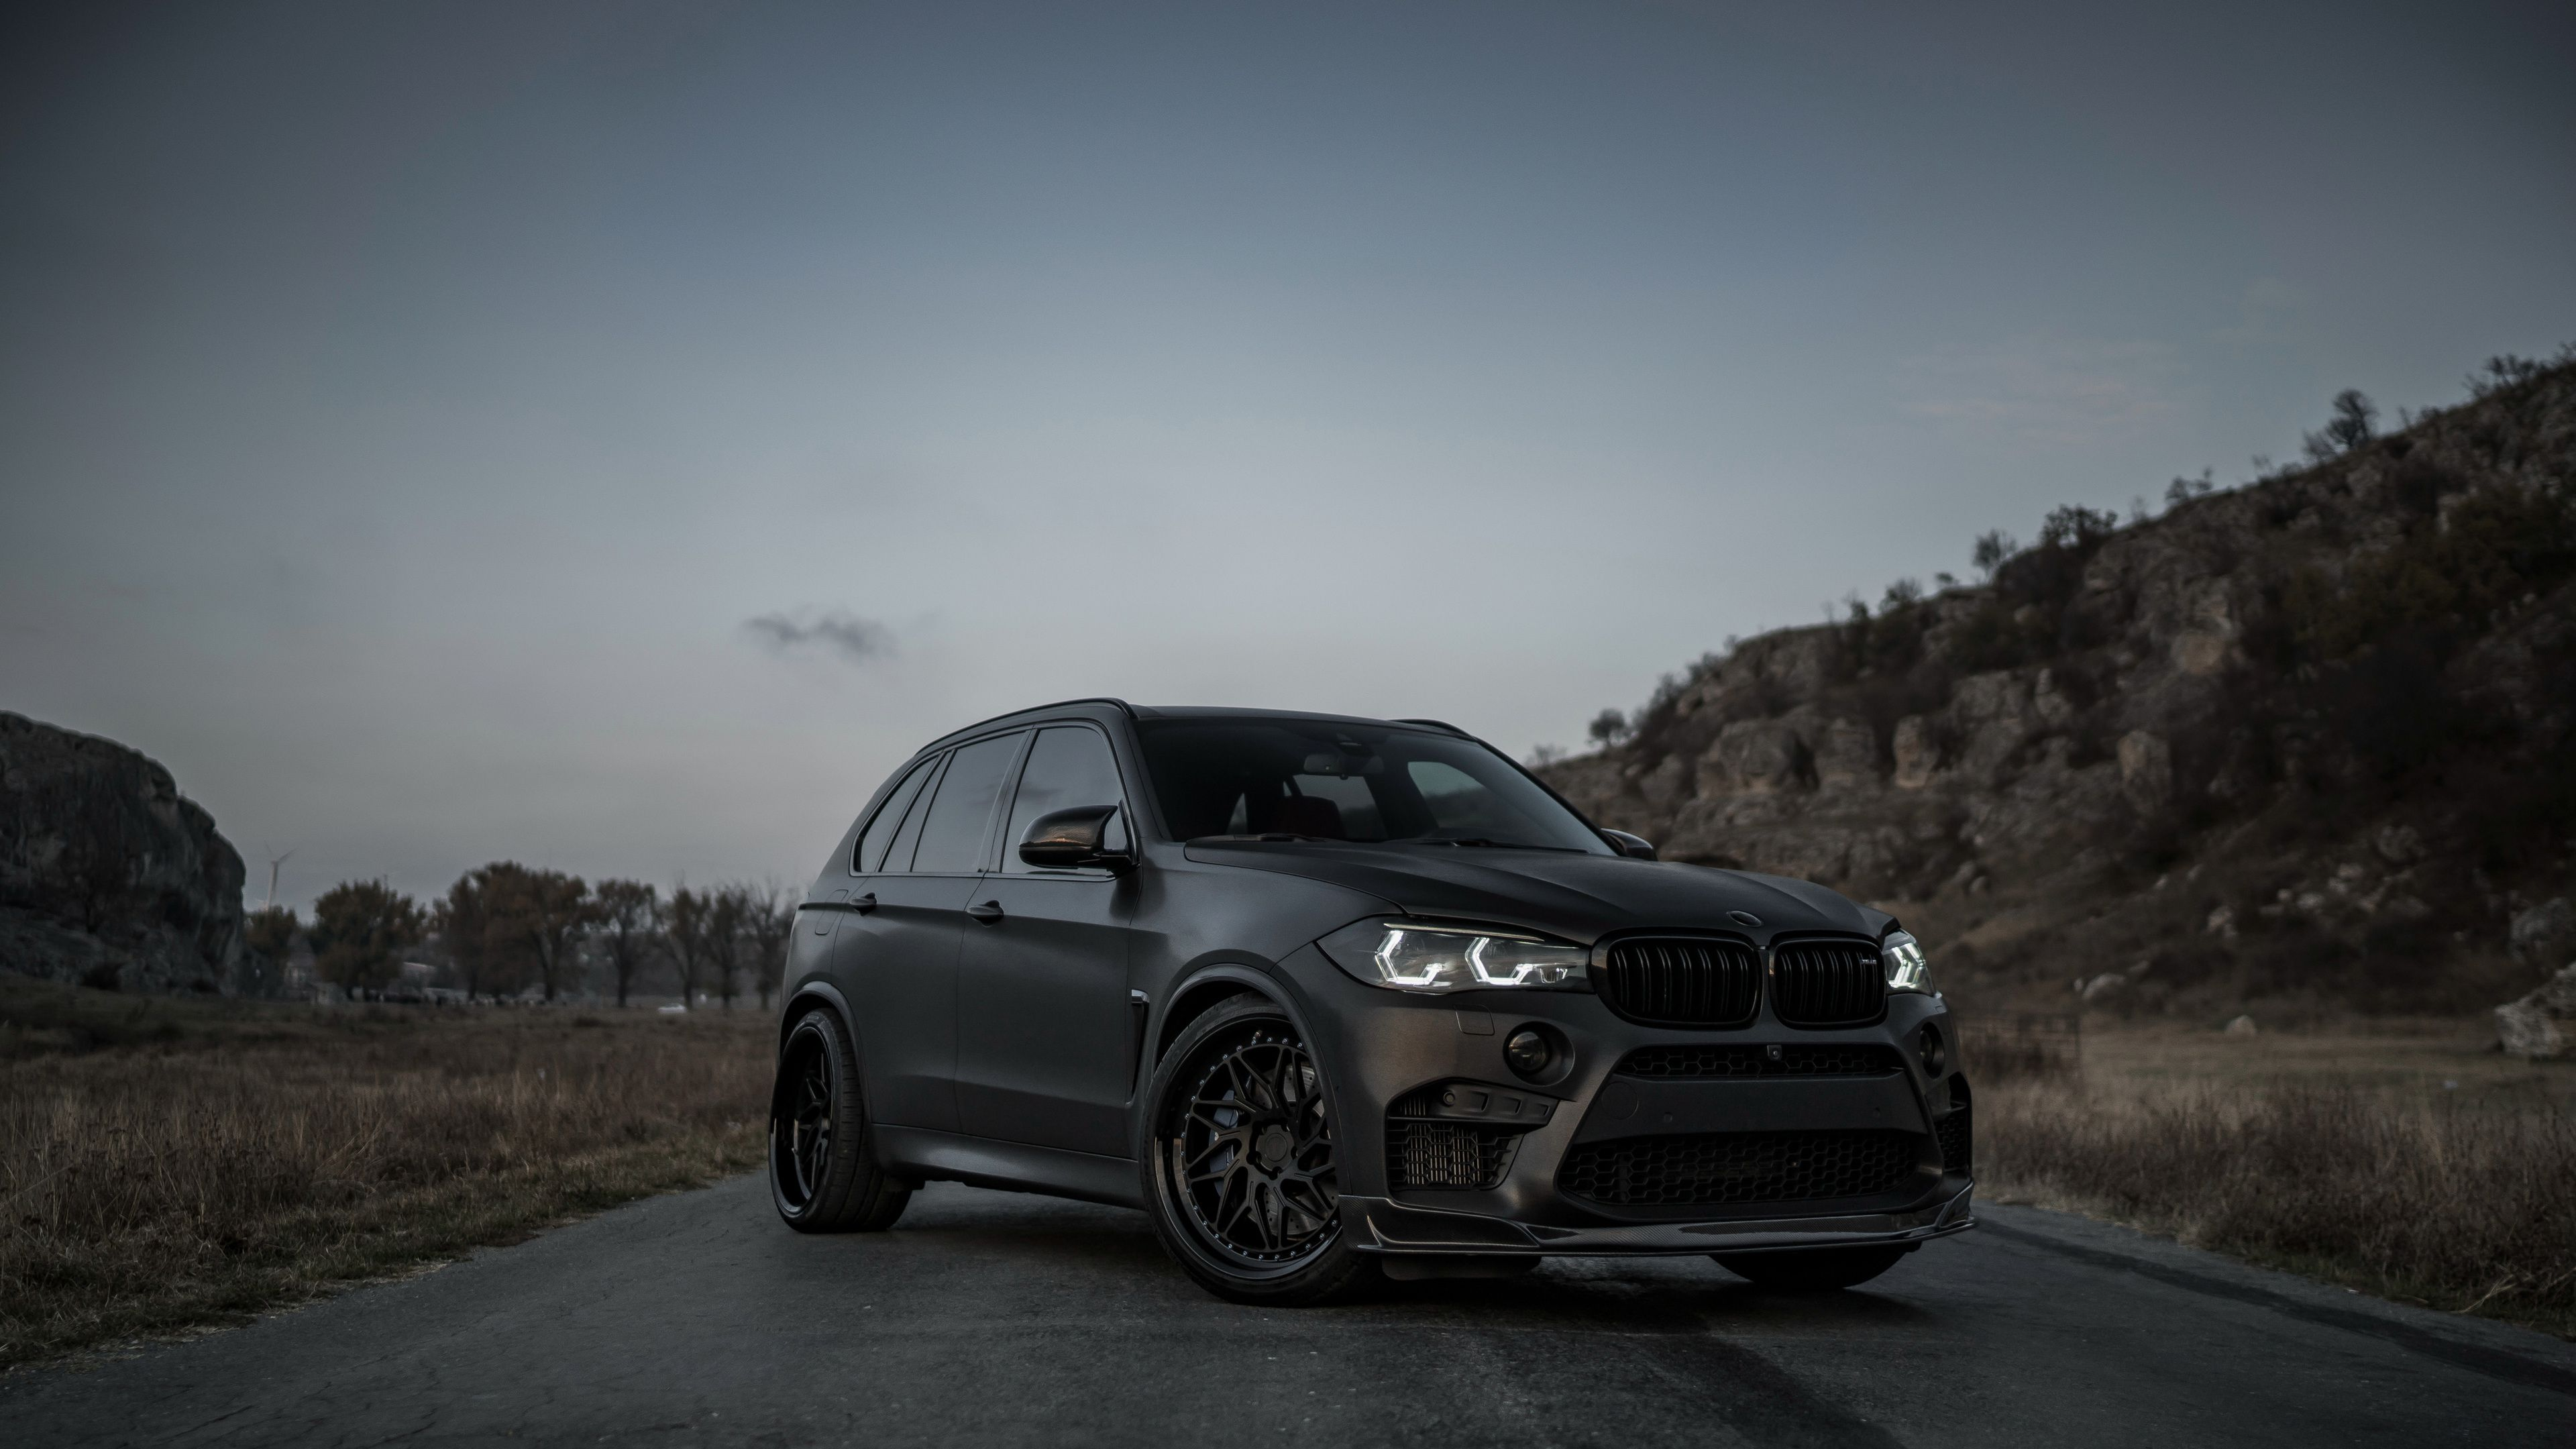 Z Performance Bmw X5 2018 4k Hd Wallpapers Cars Wallpapers Bmw X5